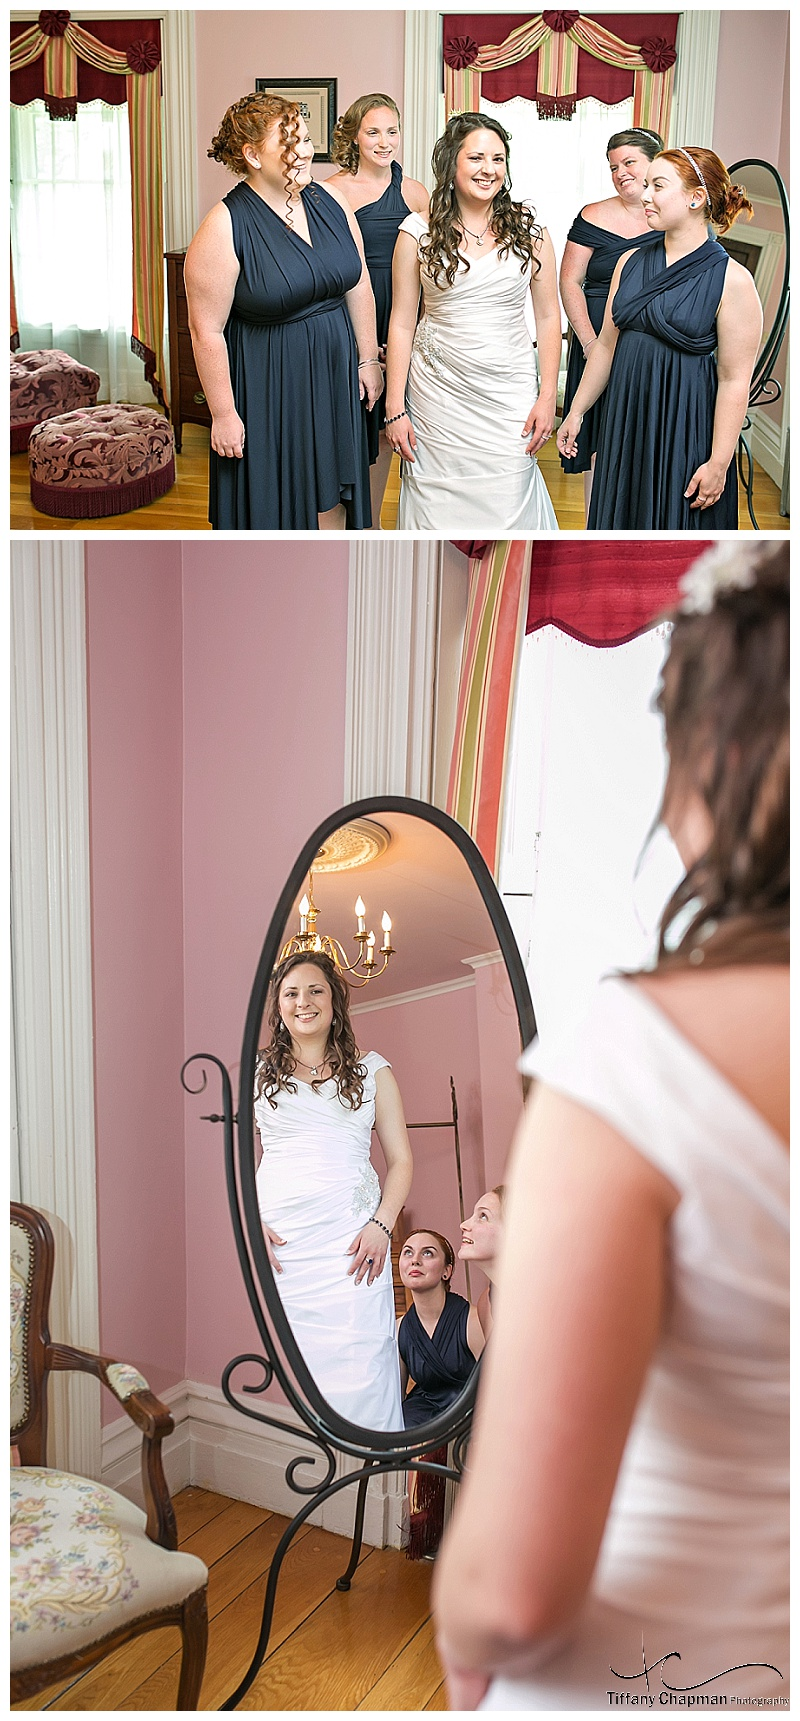 I absolutely adore these two pictures. Nothing makes a bride feel more beautiful then having her bridesmaids admiring her!